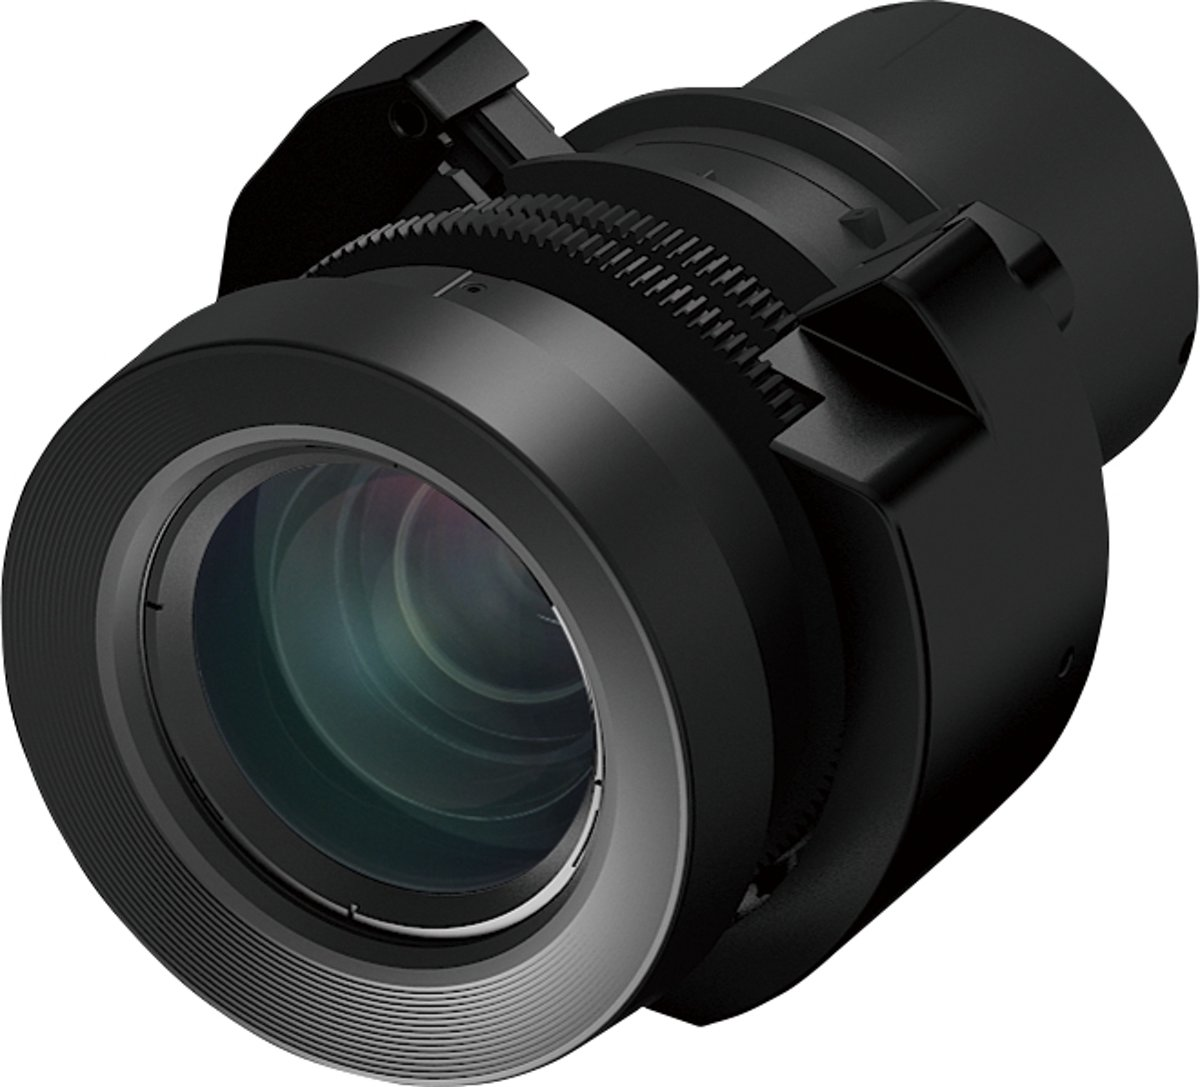 Lens - ELPLM08 - Mid throw 1 - G7000/L1000 series